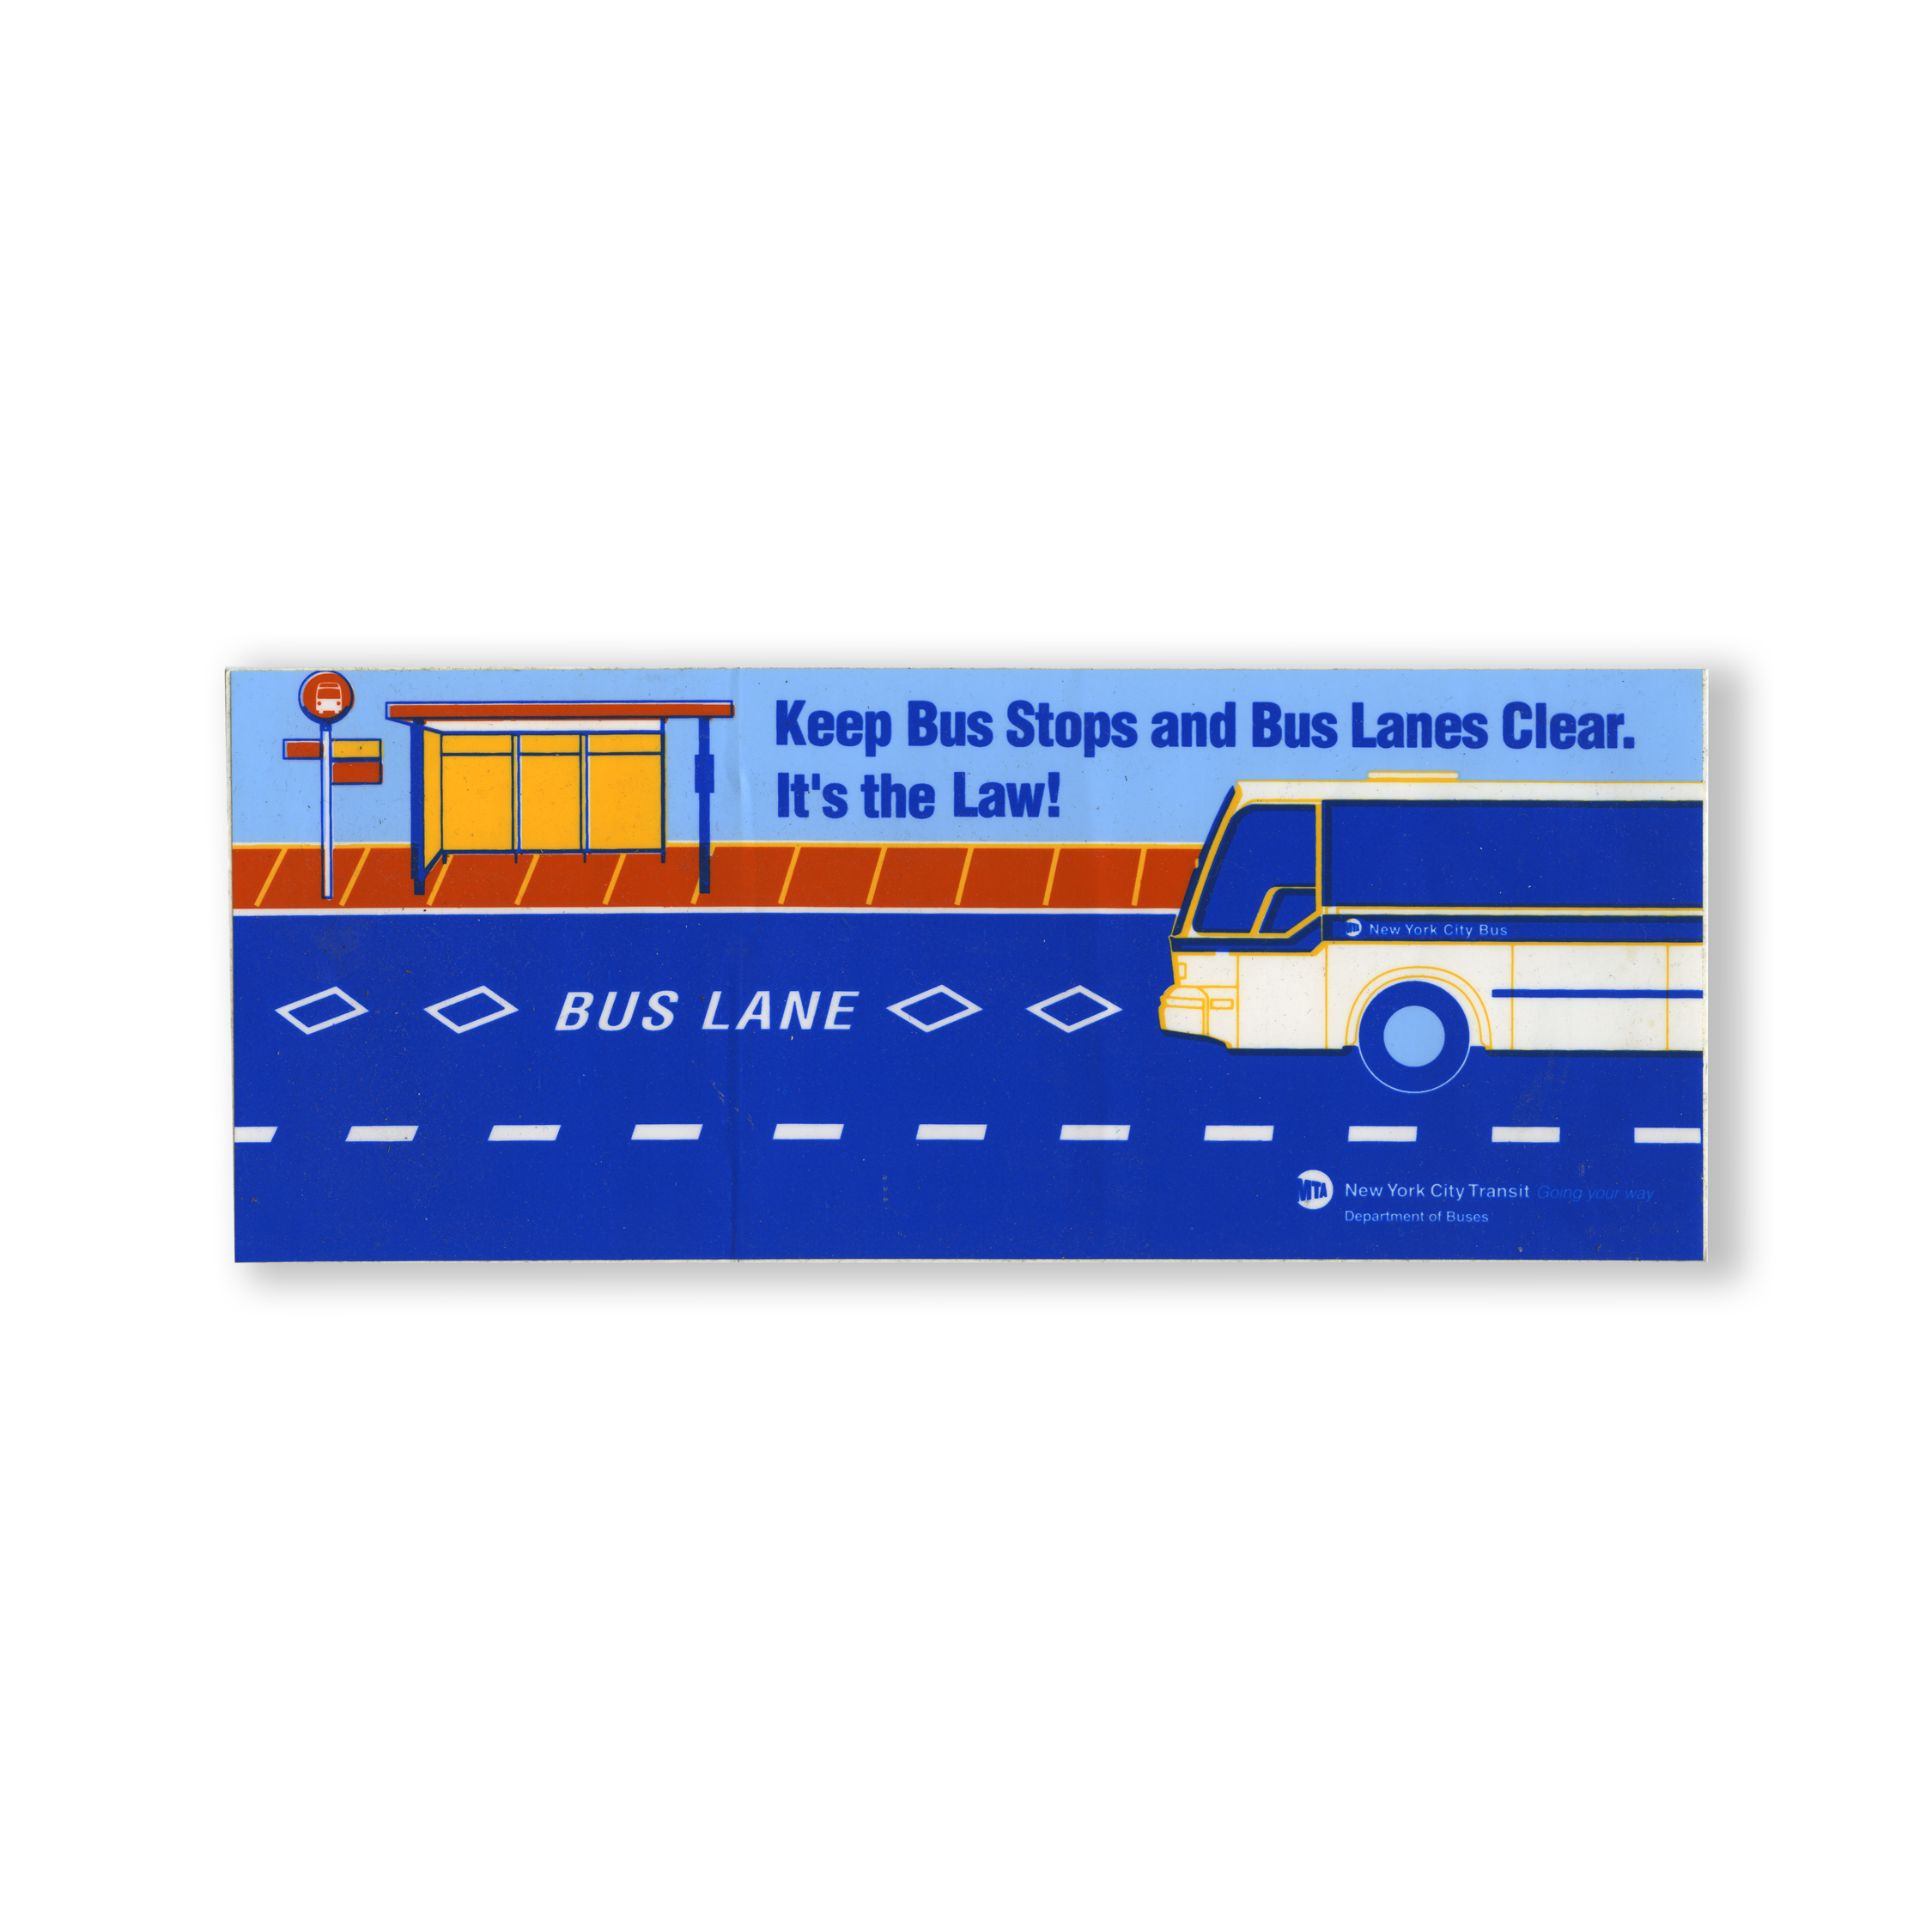 the_nycta_project_bus_lane_sticker.jpg